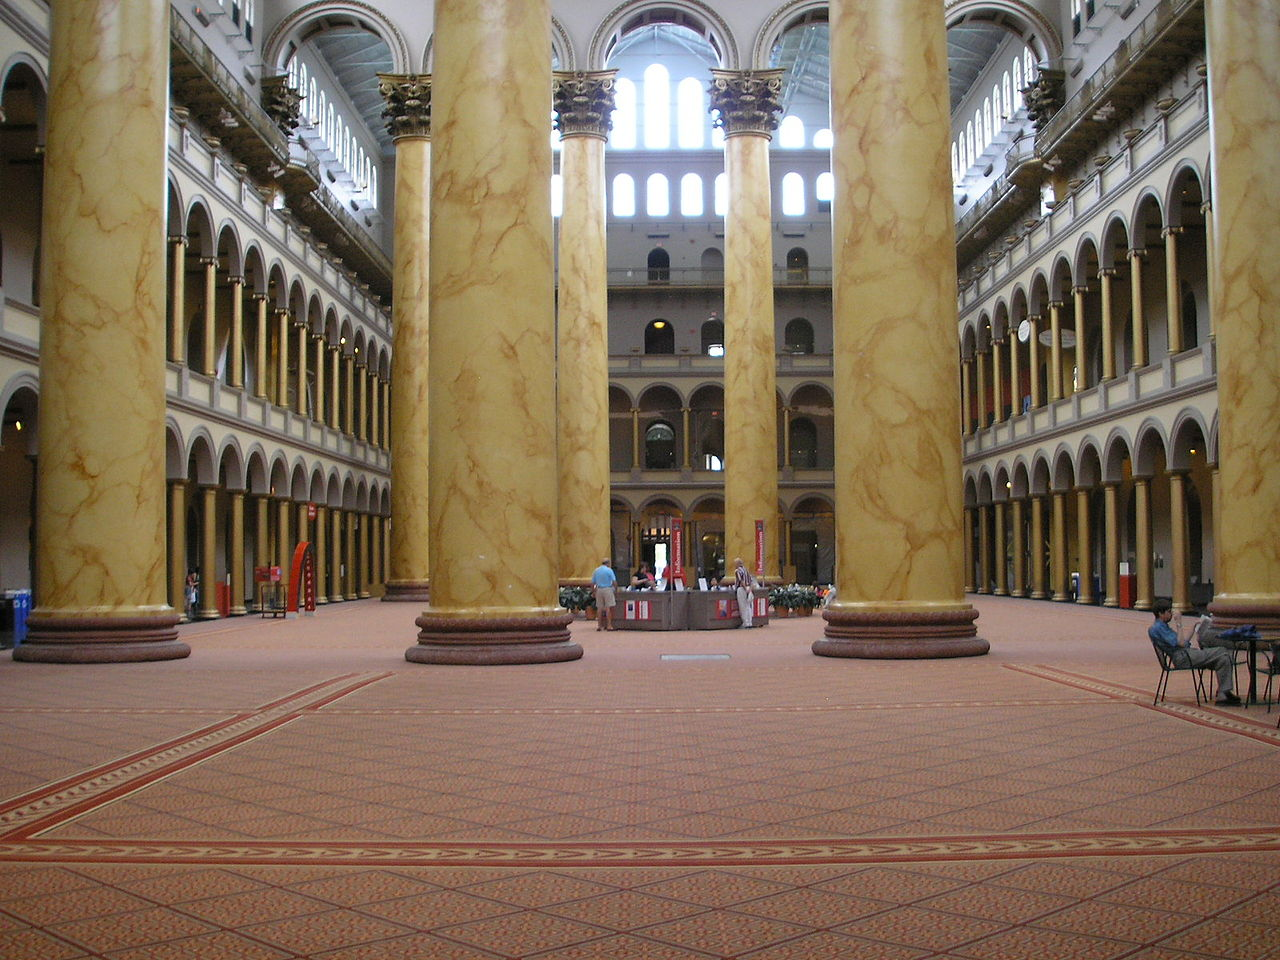 50 breathtaking photos of National Building Museum in